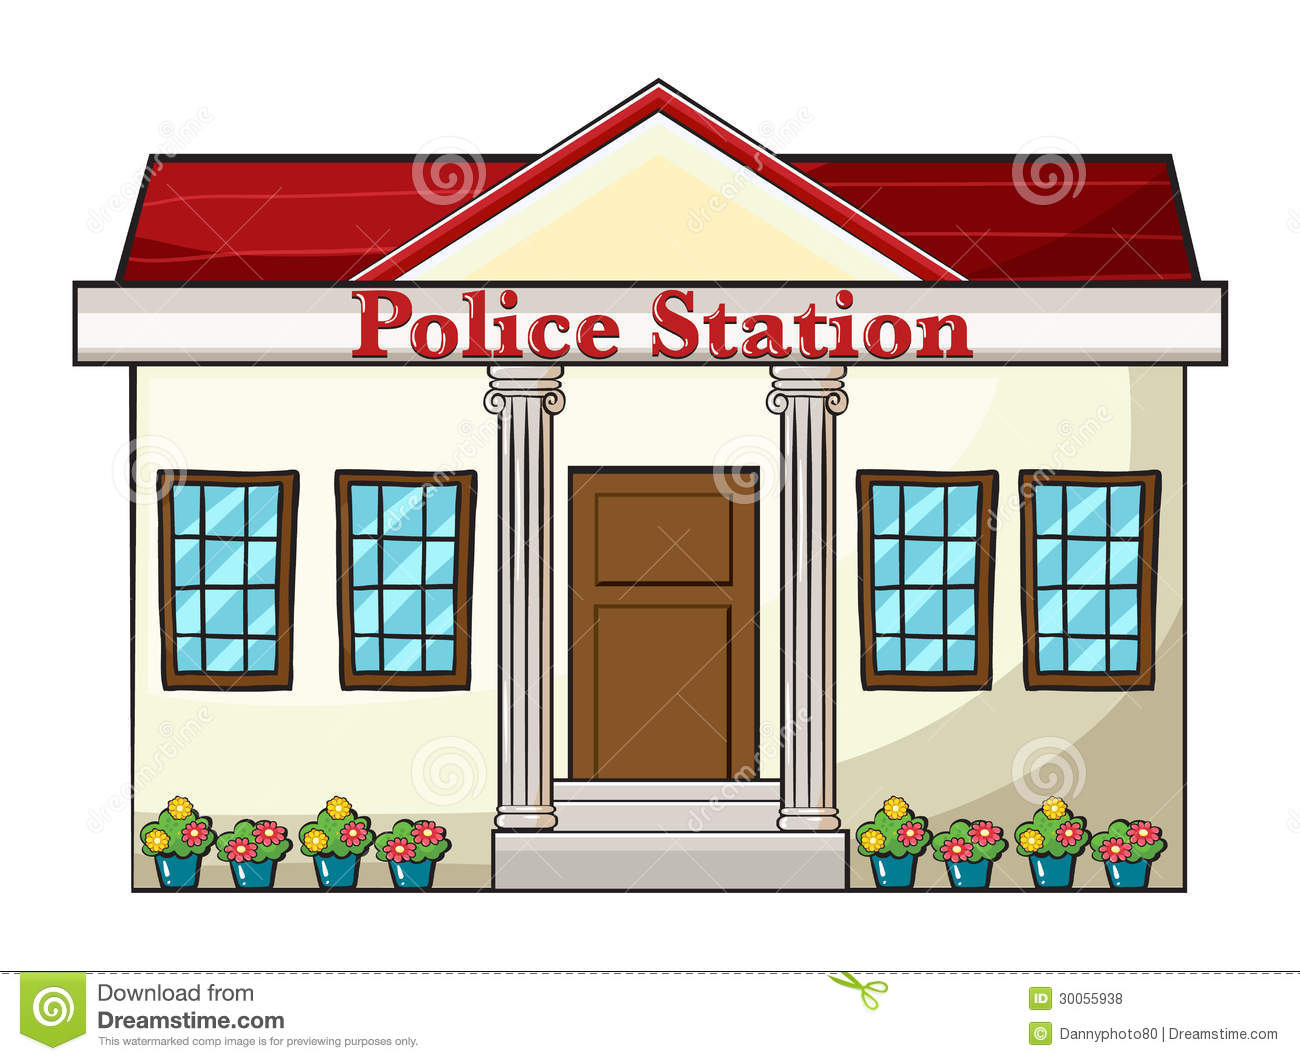 Police station building clipart banner freeuse stock Police Station Clip Art & Police Station Clip Art Clip Art Images ... banner freeuse stock